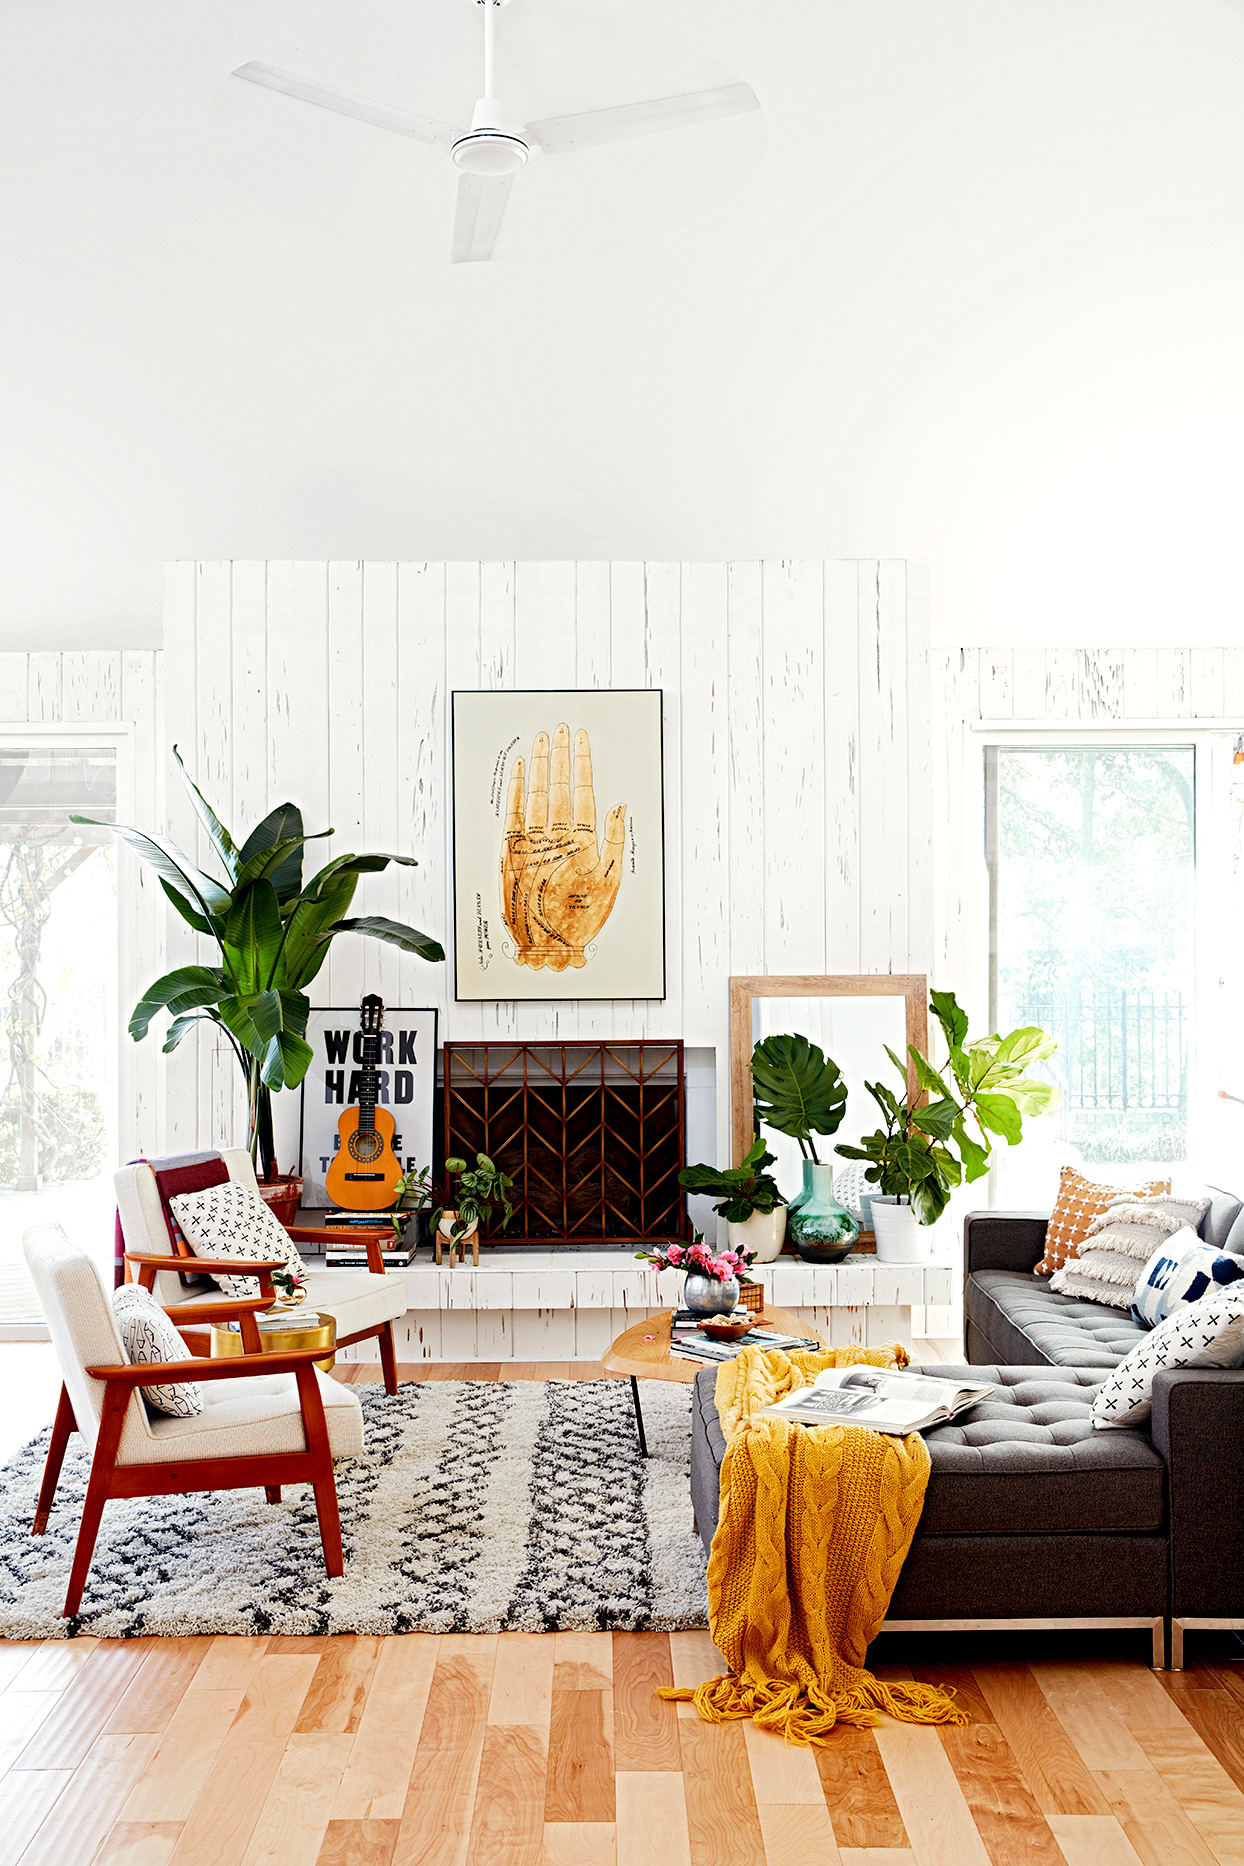 Living room with white walls and fireplace